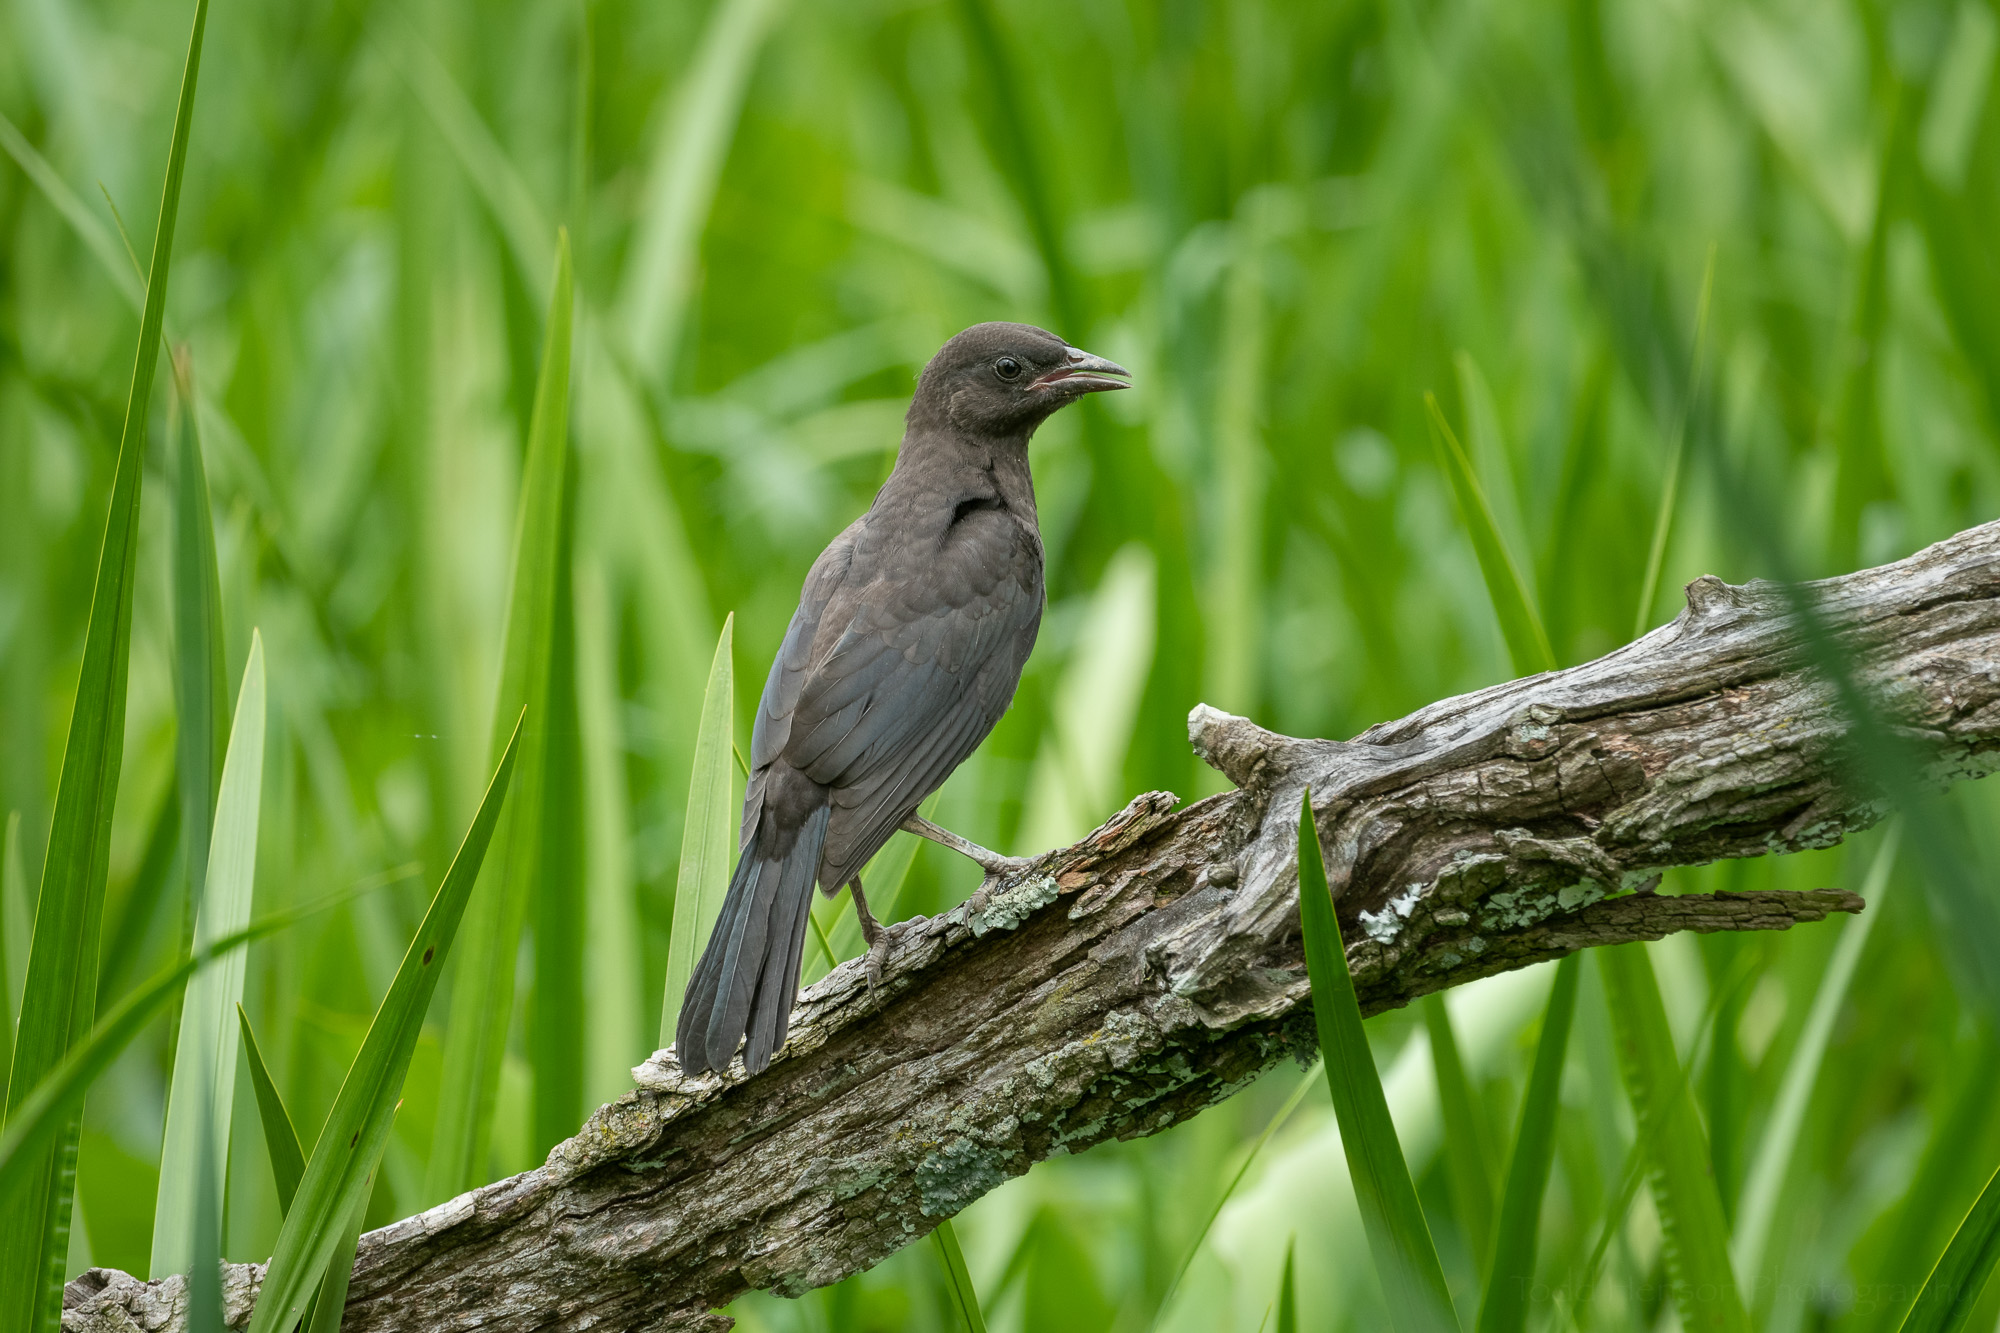 An adolescent Common Grackle resting on a fallen tree.